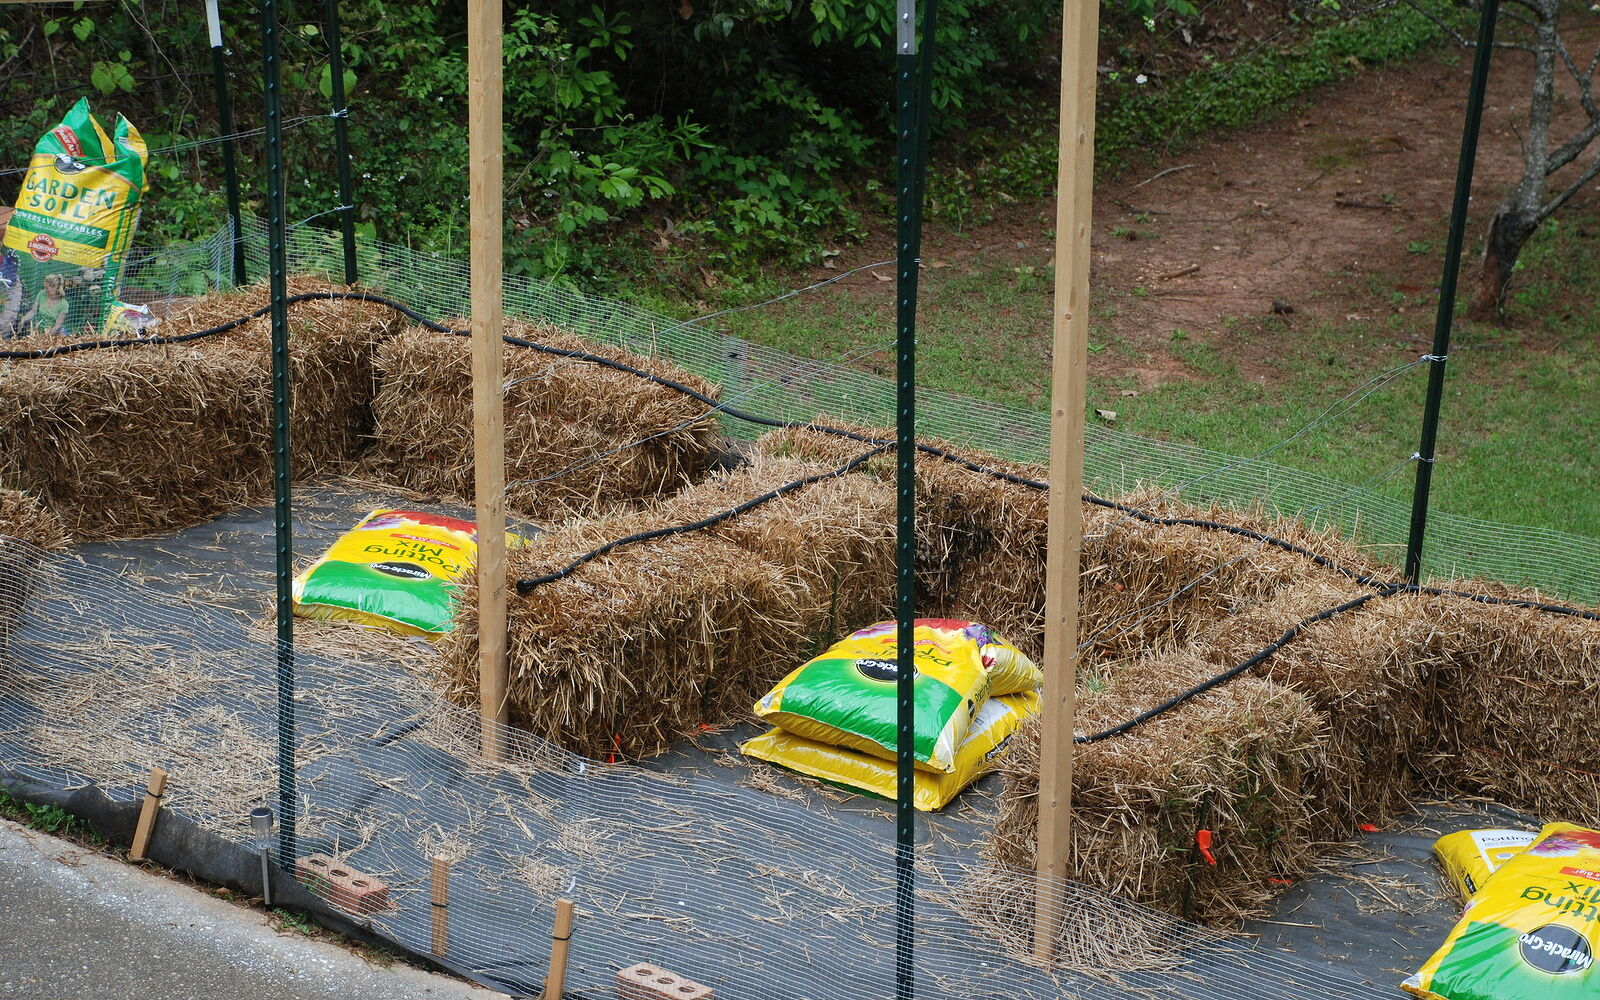 s 30 ways for you to style your garden, Use Straw Bales For A Rustic Looking Garden